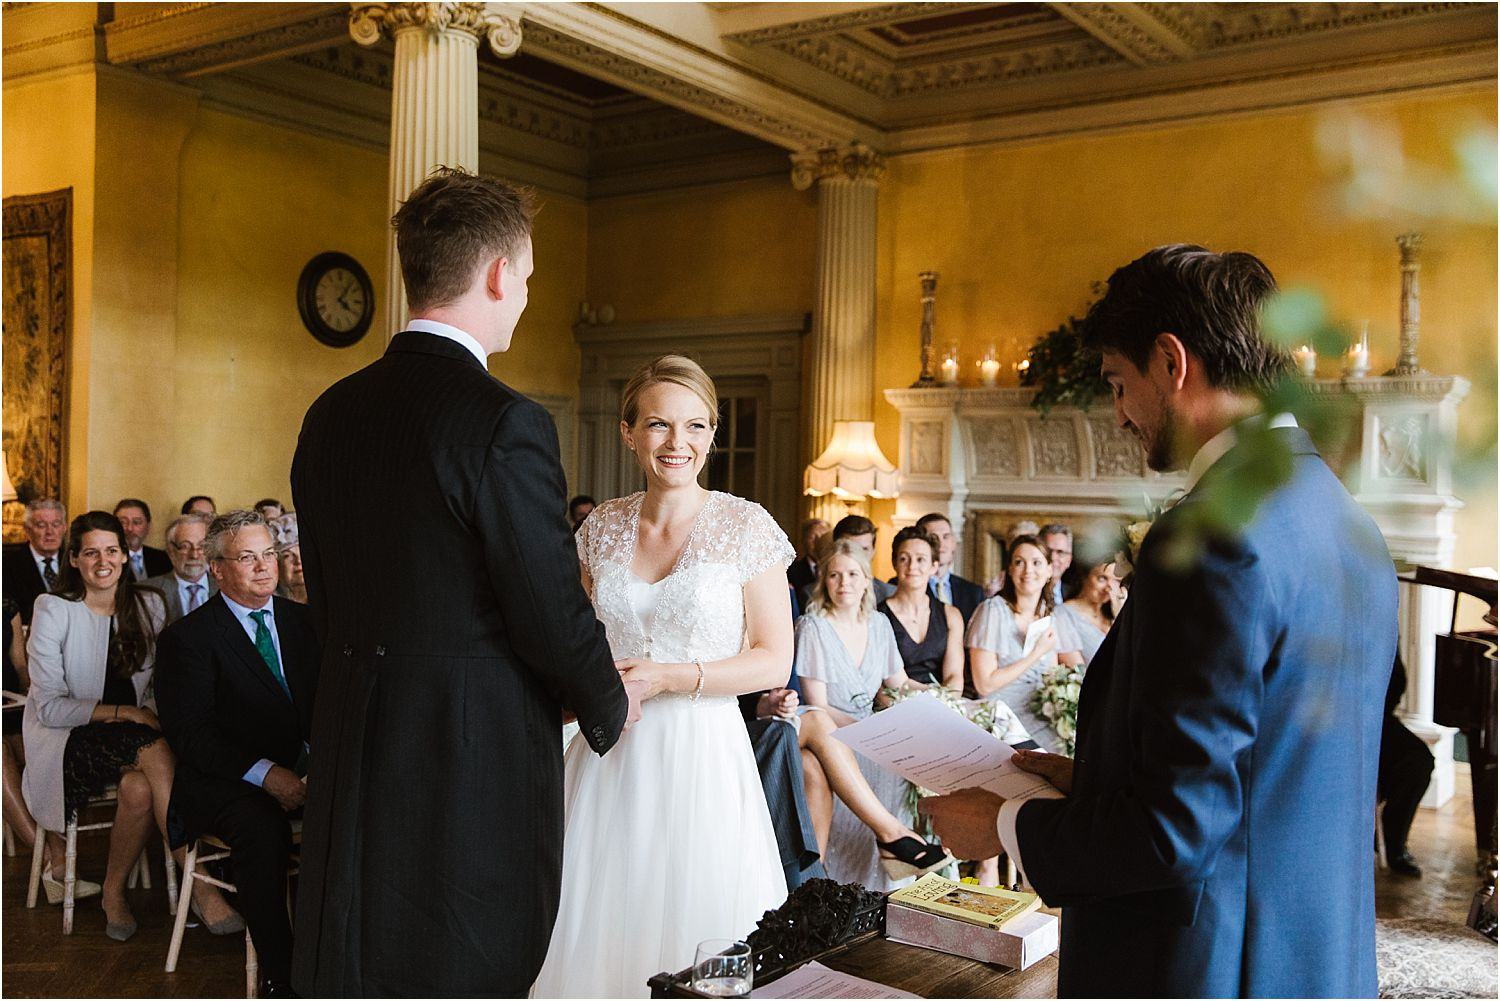 Bride and groom exchange vows at Hampton Court wedding, Surry